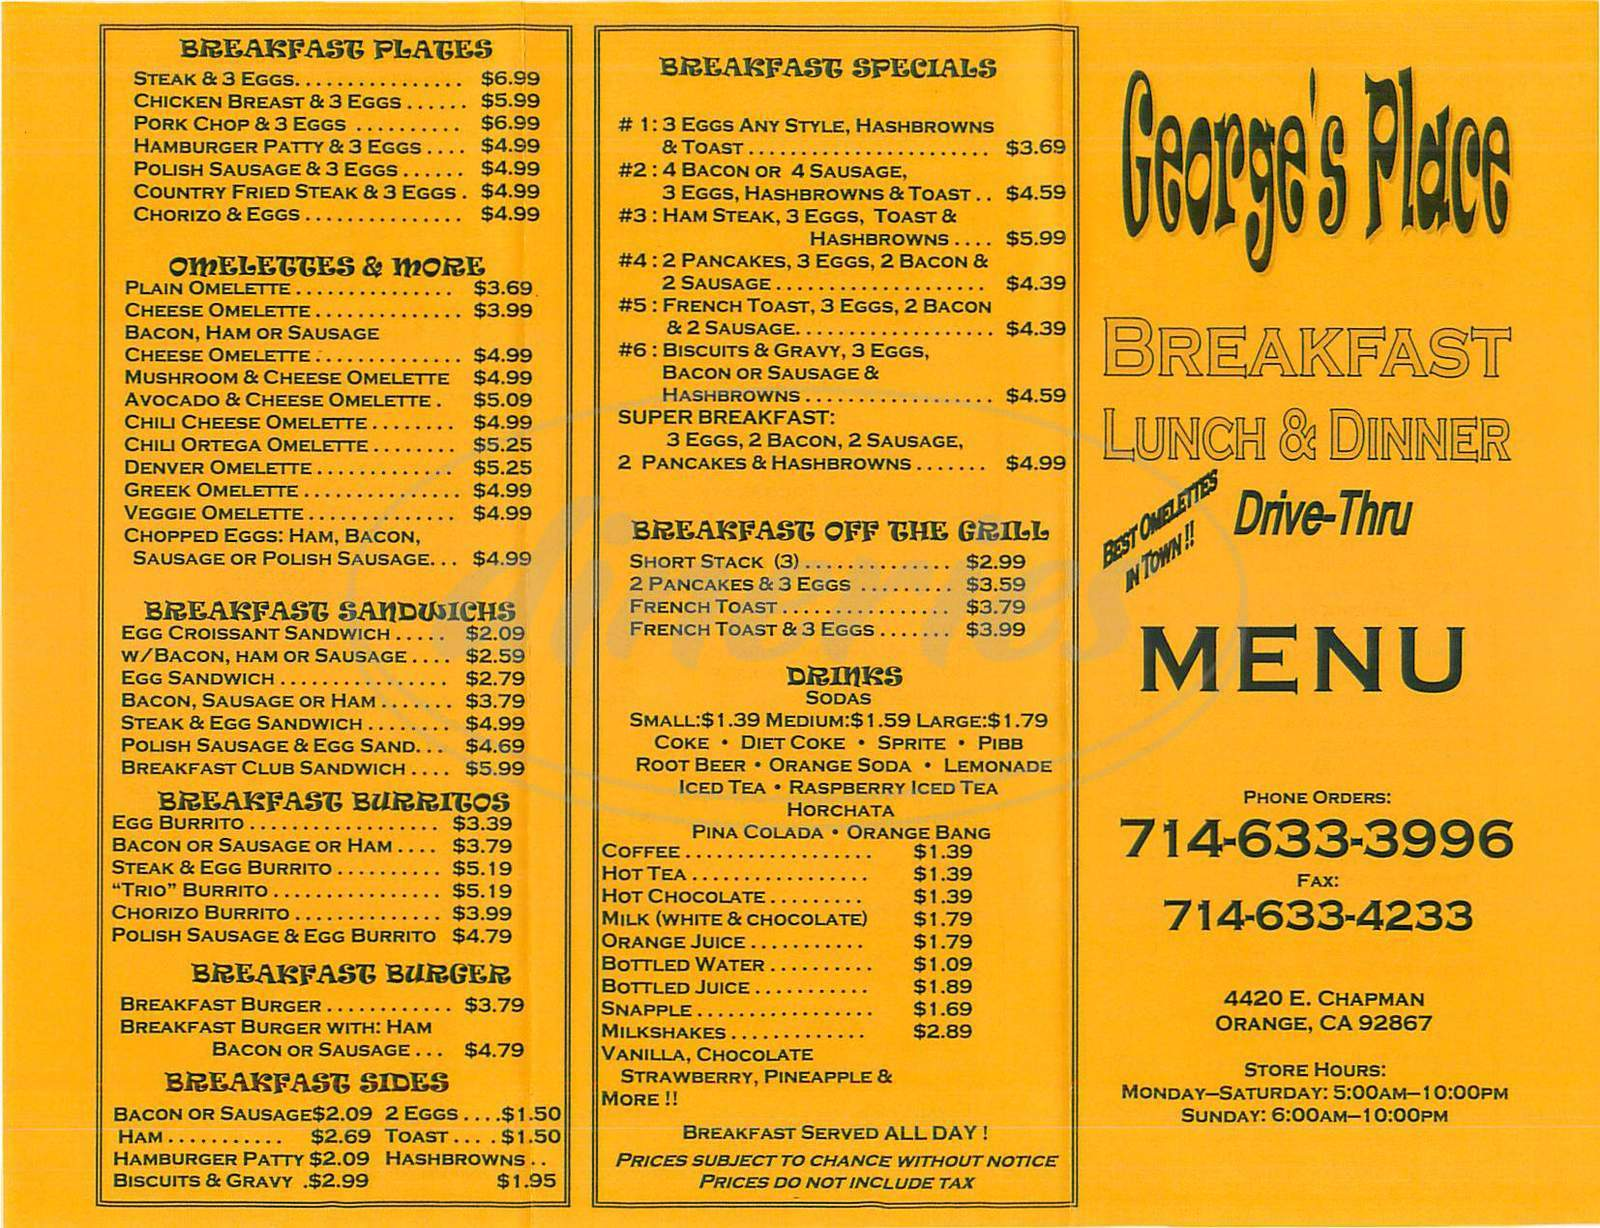 menu for George's Place